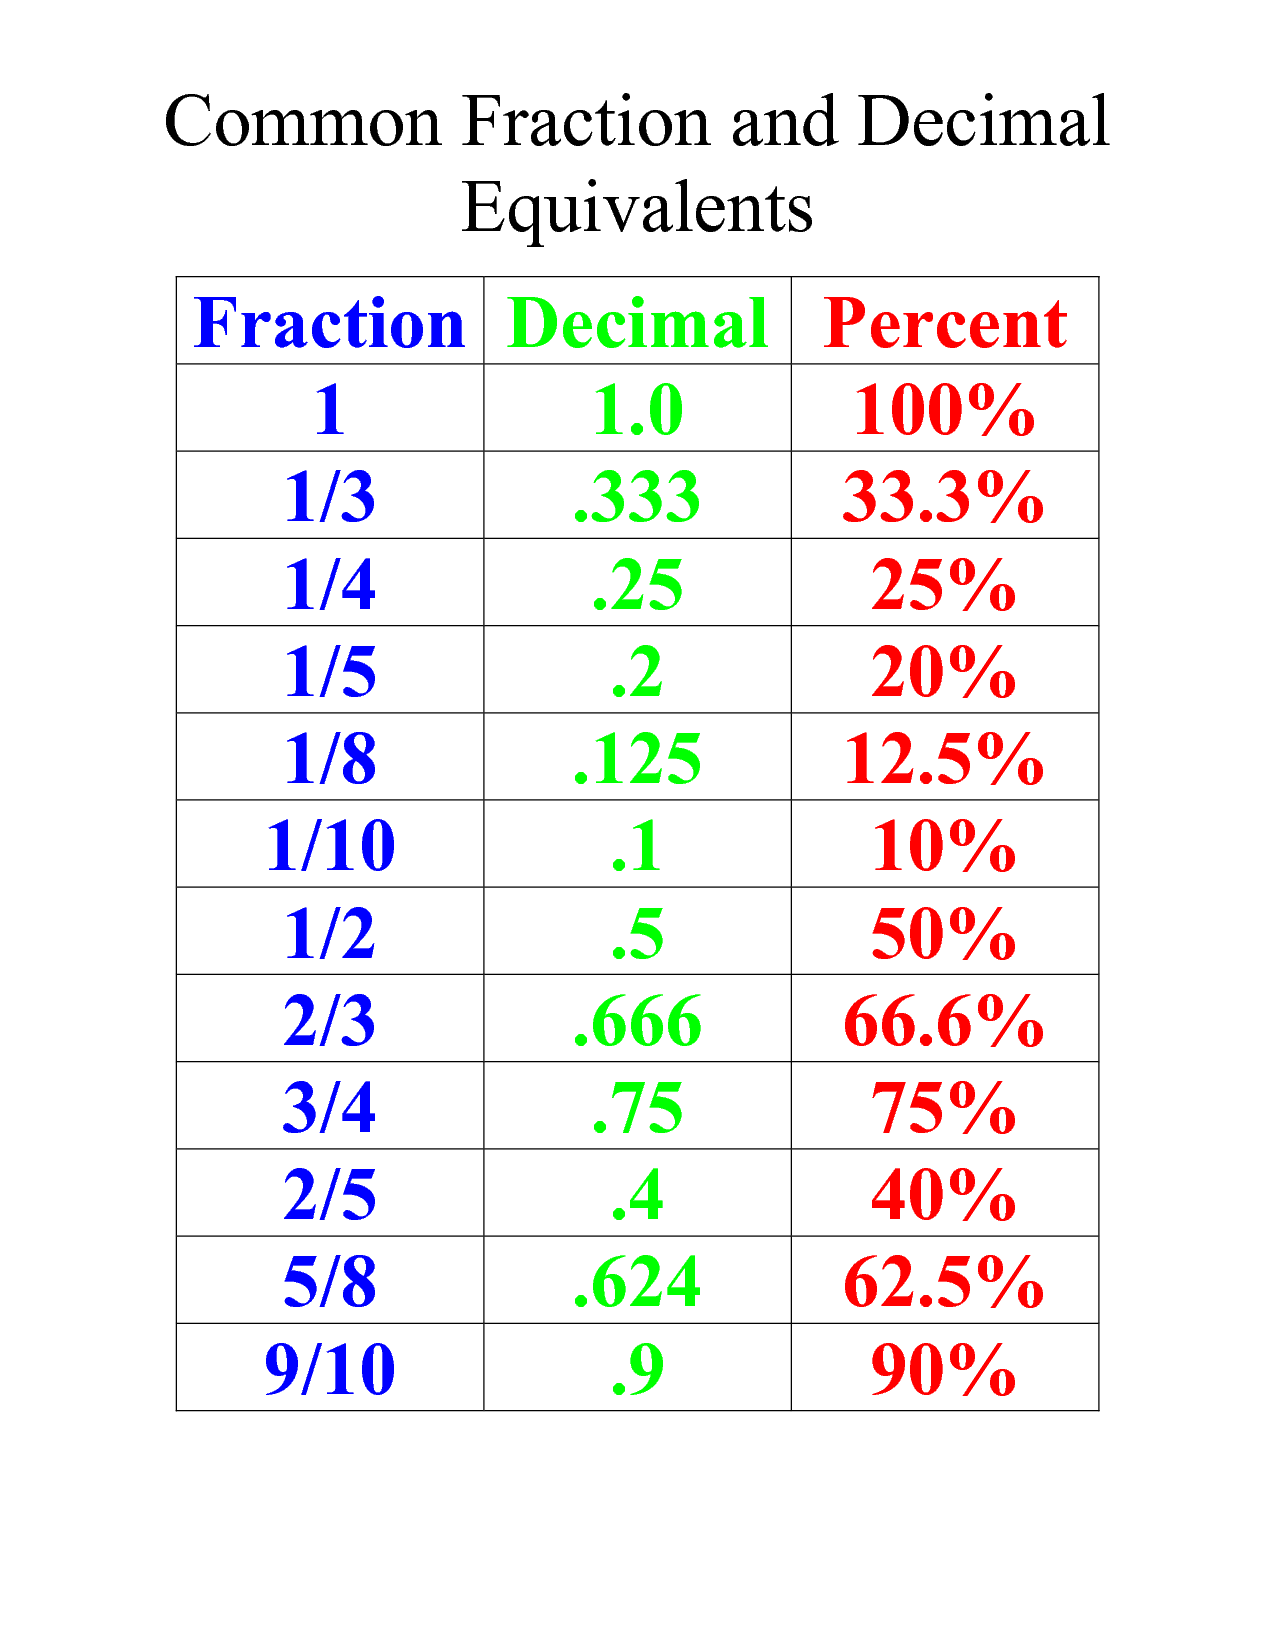 For 4th 5th Grade Common Fraction And Decimal Equivalents